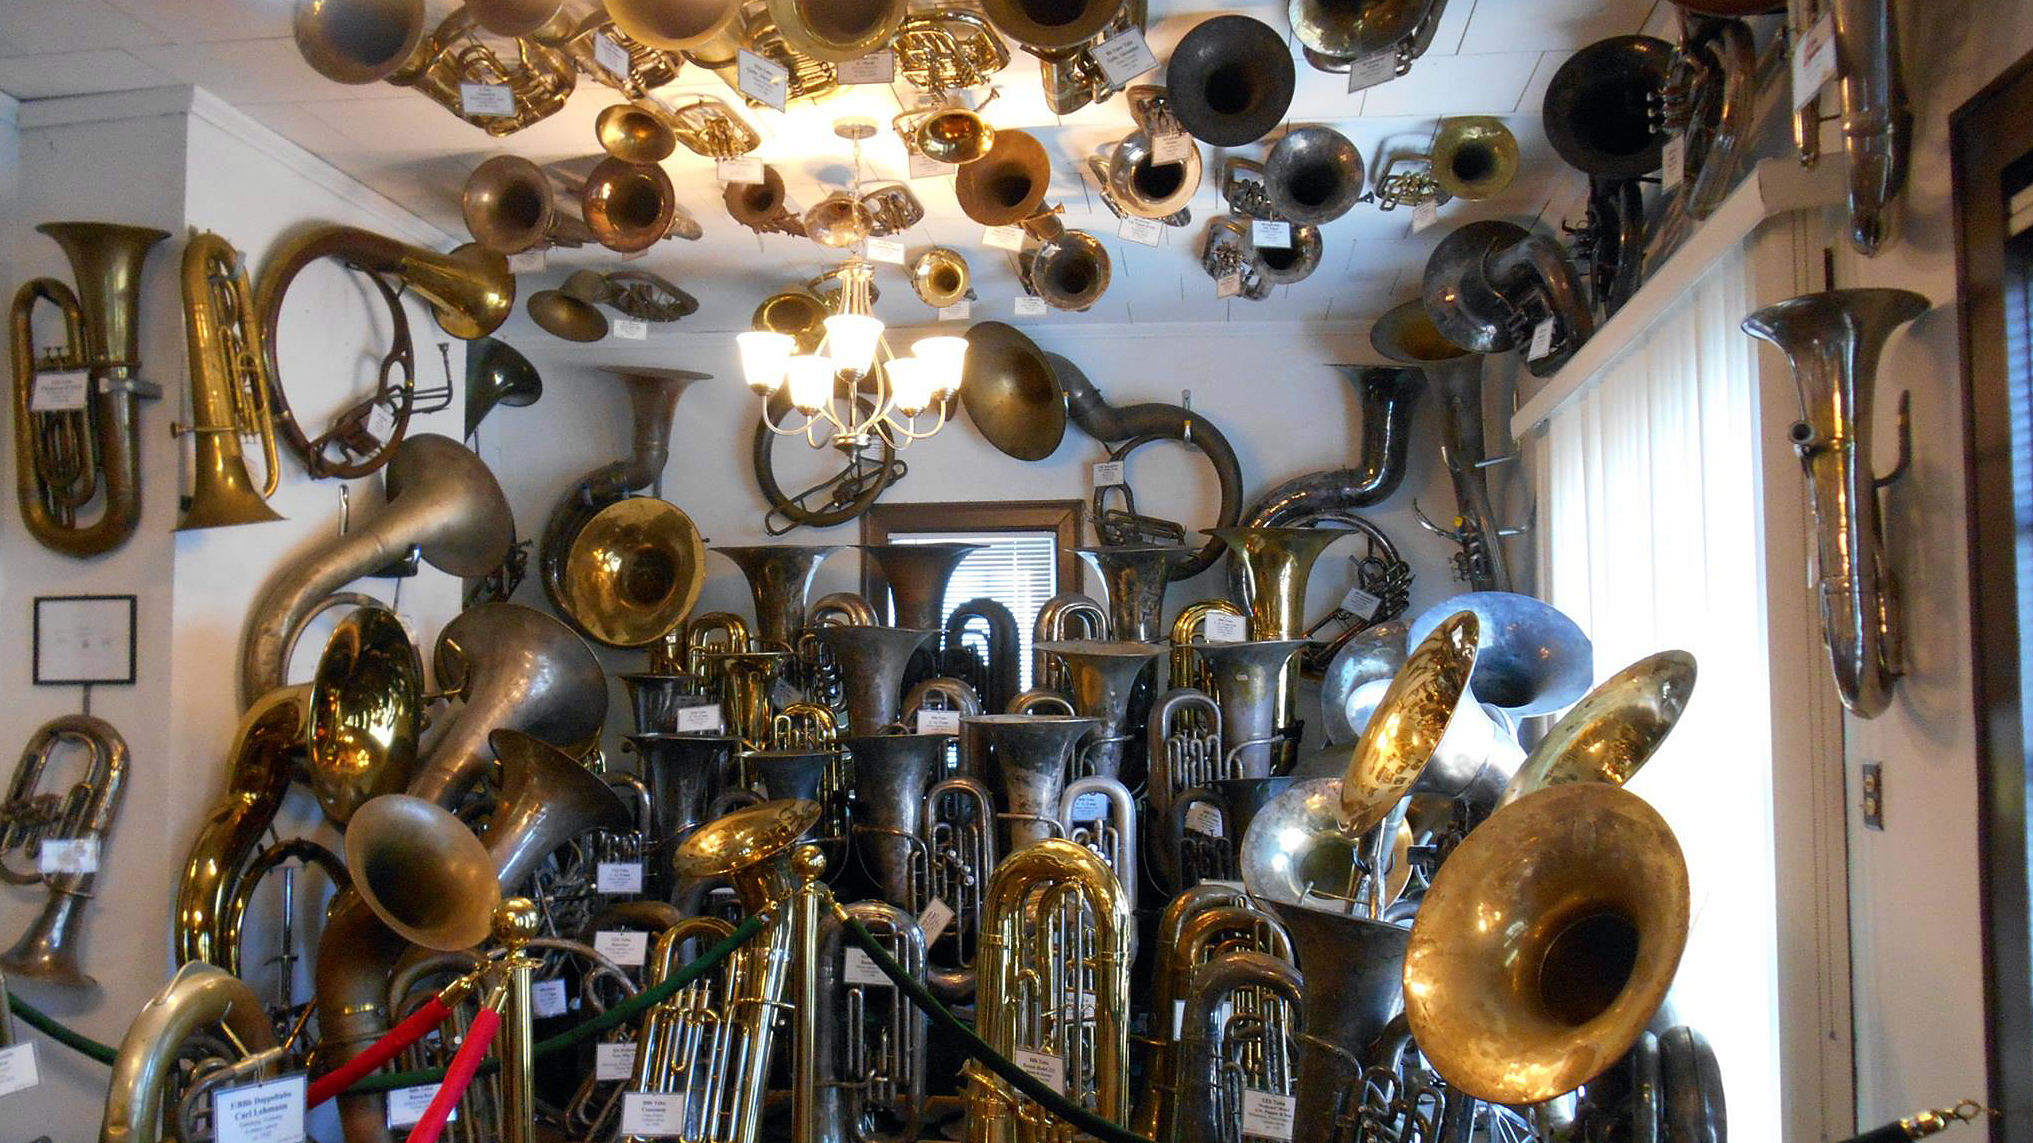 A Museum With Nearly 300 Brass Horns